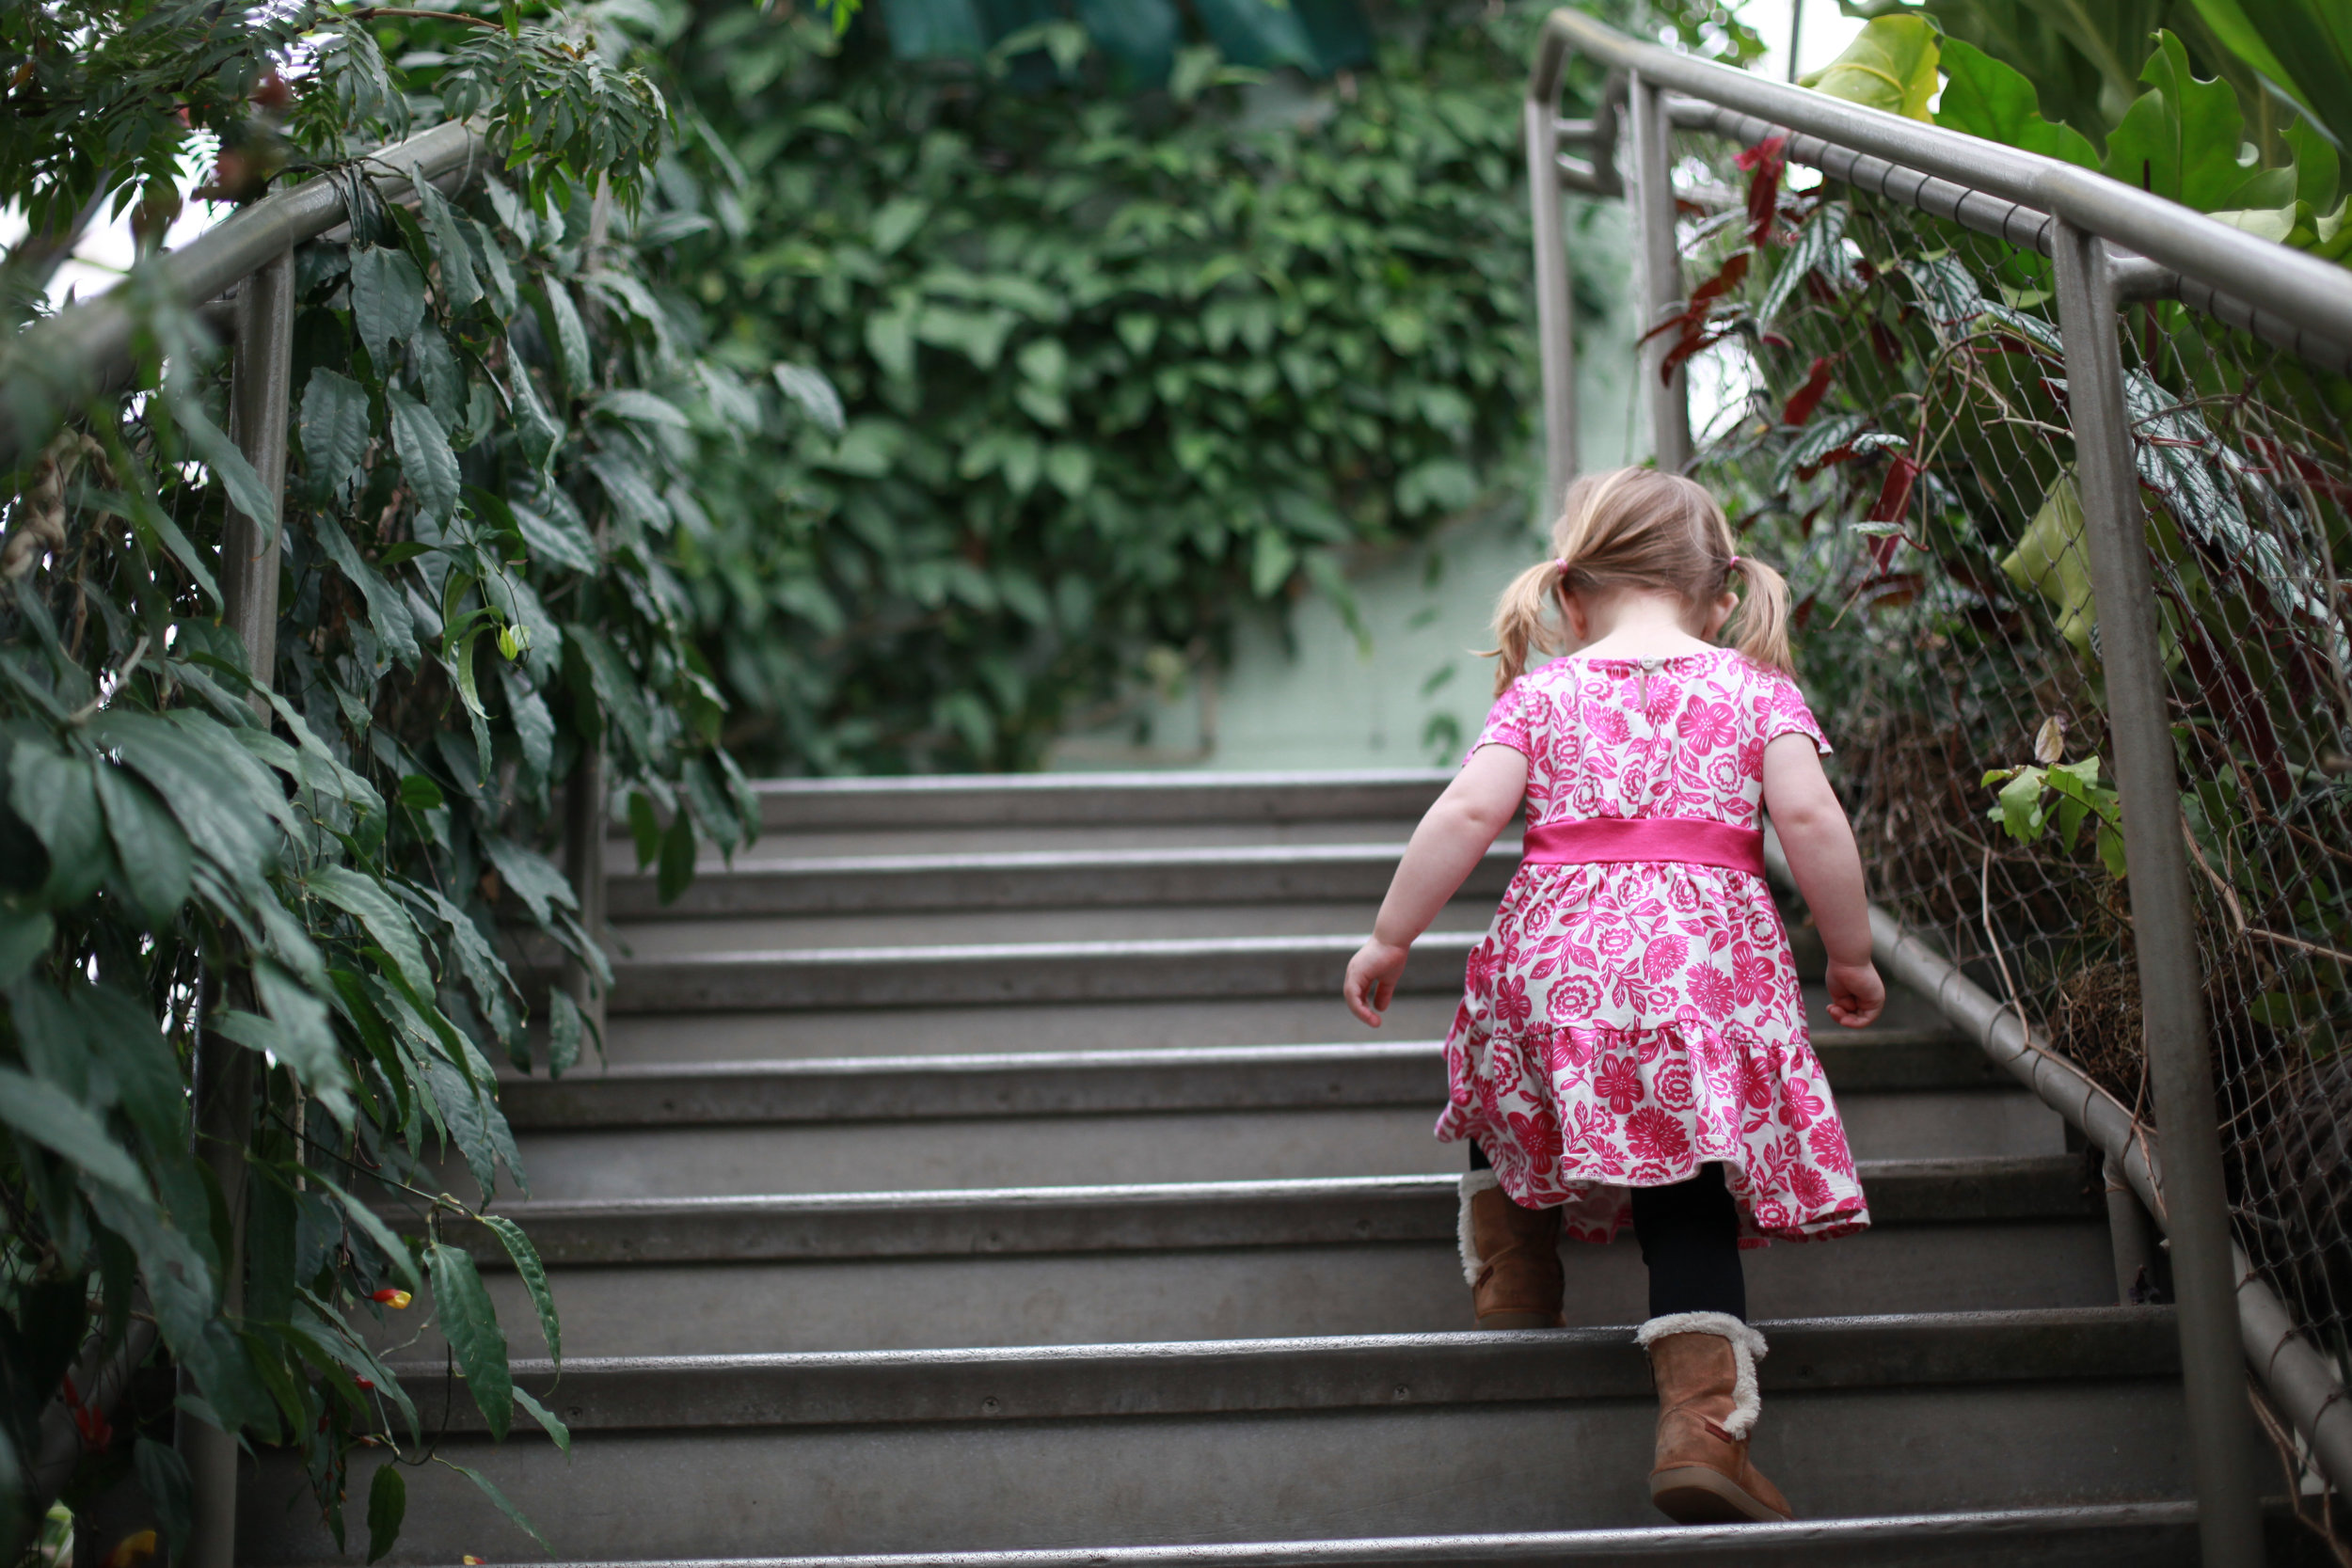 There is so much to explore at Garfield Park Conservatory.  Kids will love the Children's Garden.  It even has a big tunnel slide, worth the climb.